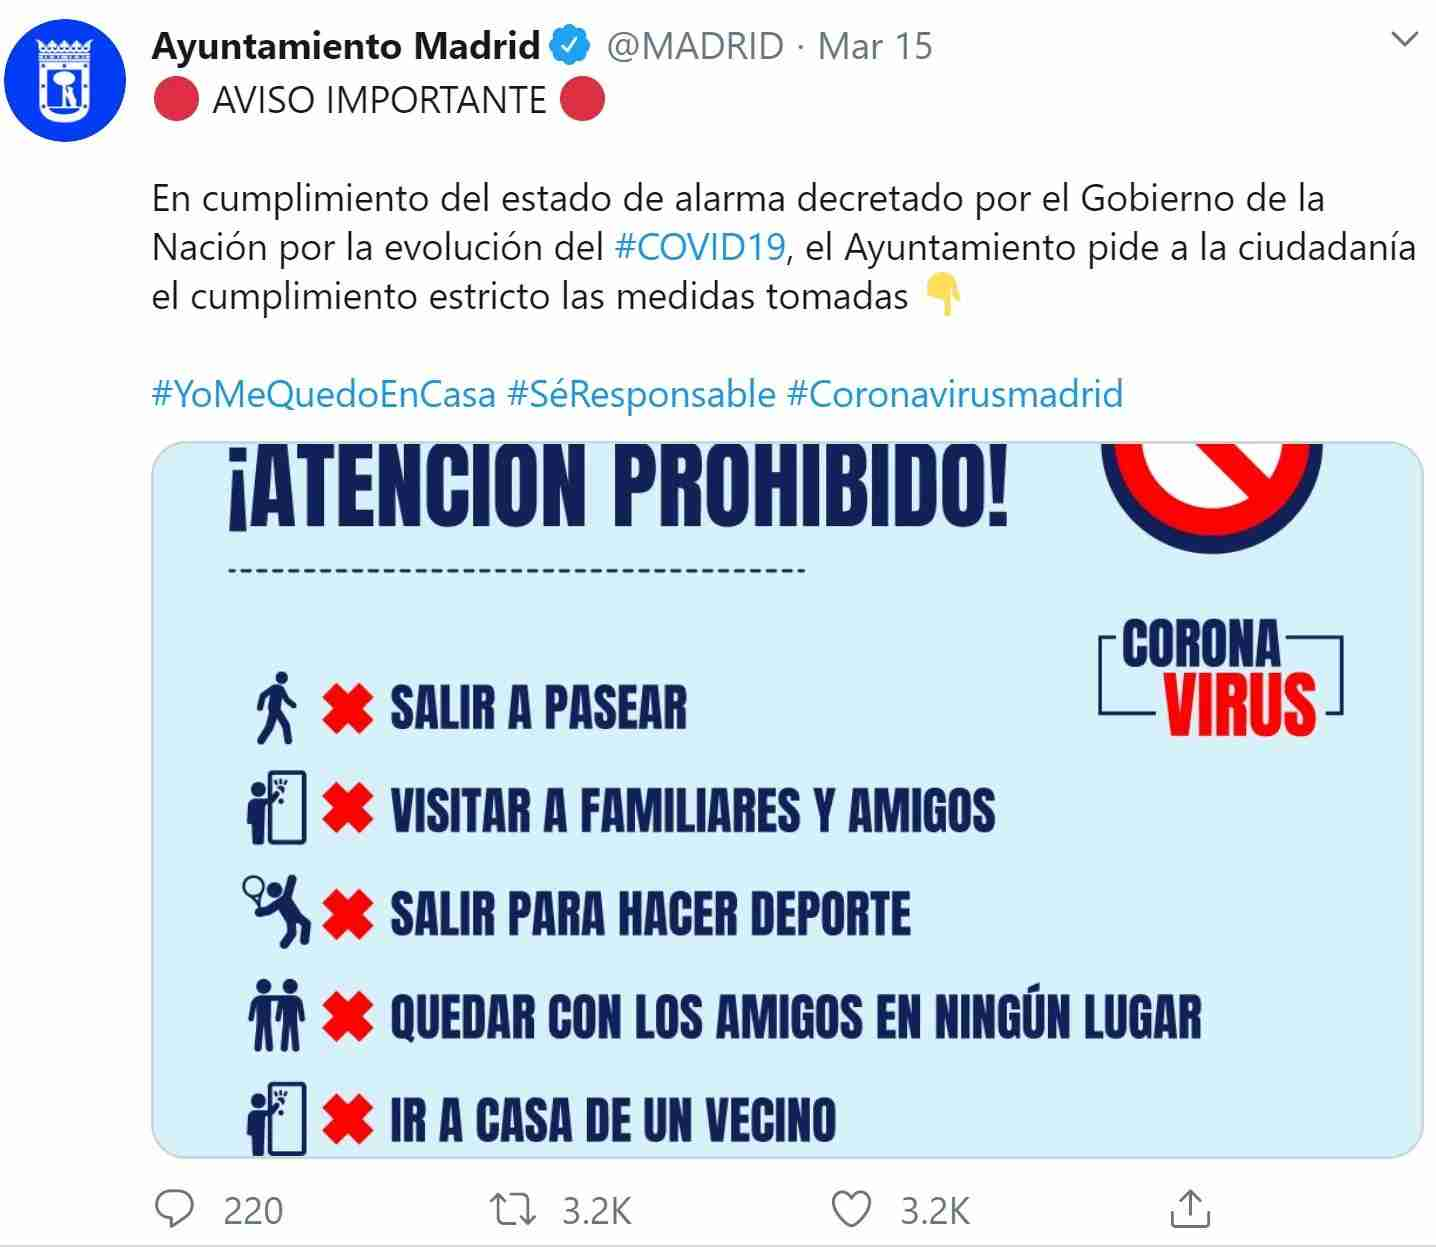 Tweet from @Madrid, stating the lockdown rules.